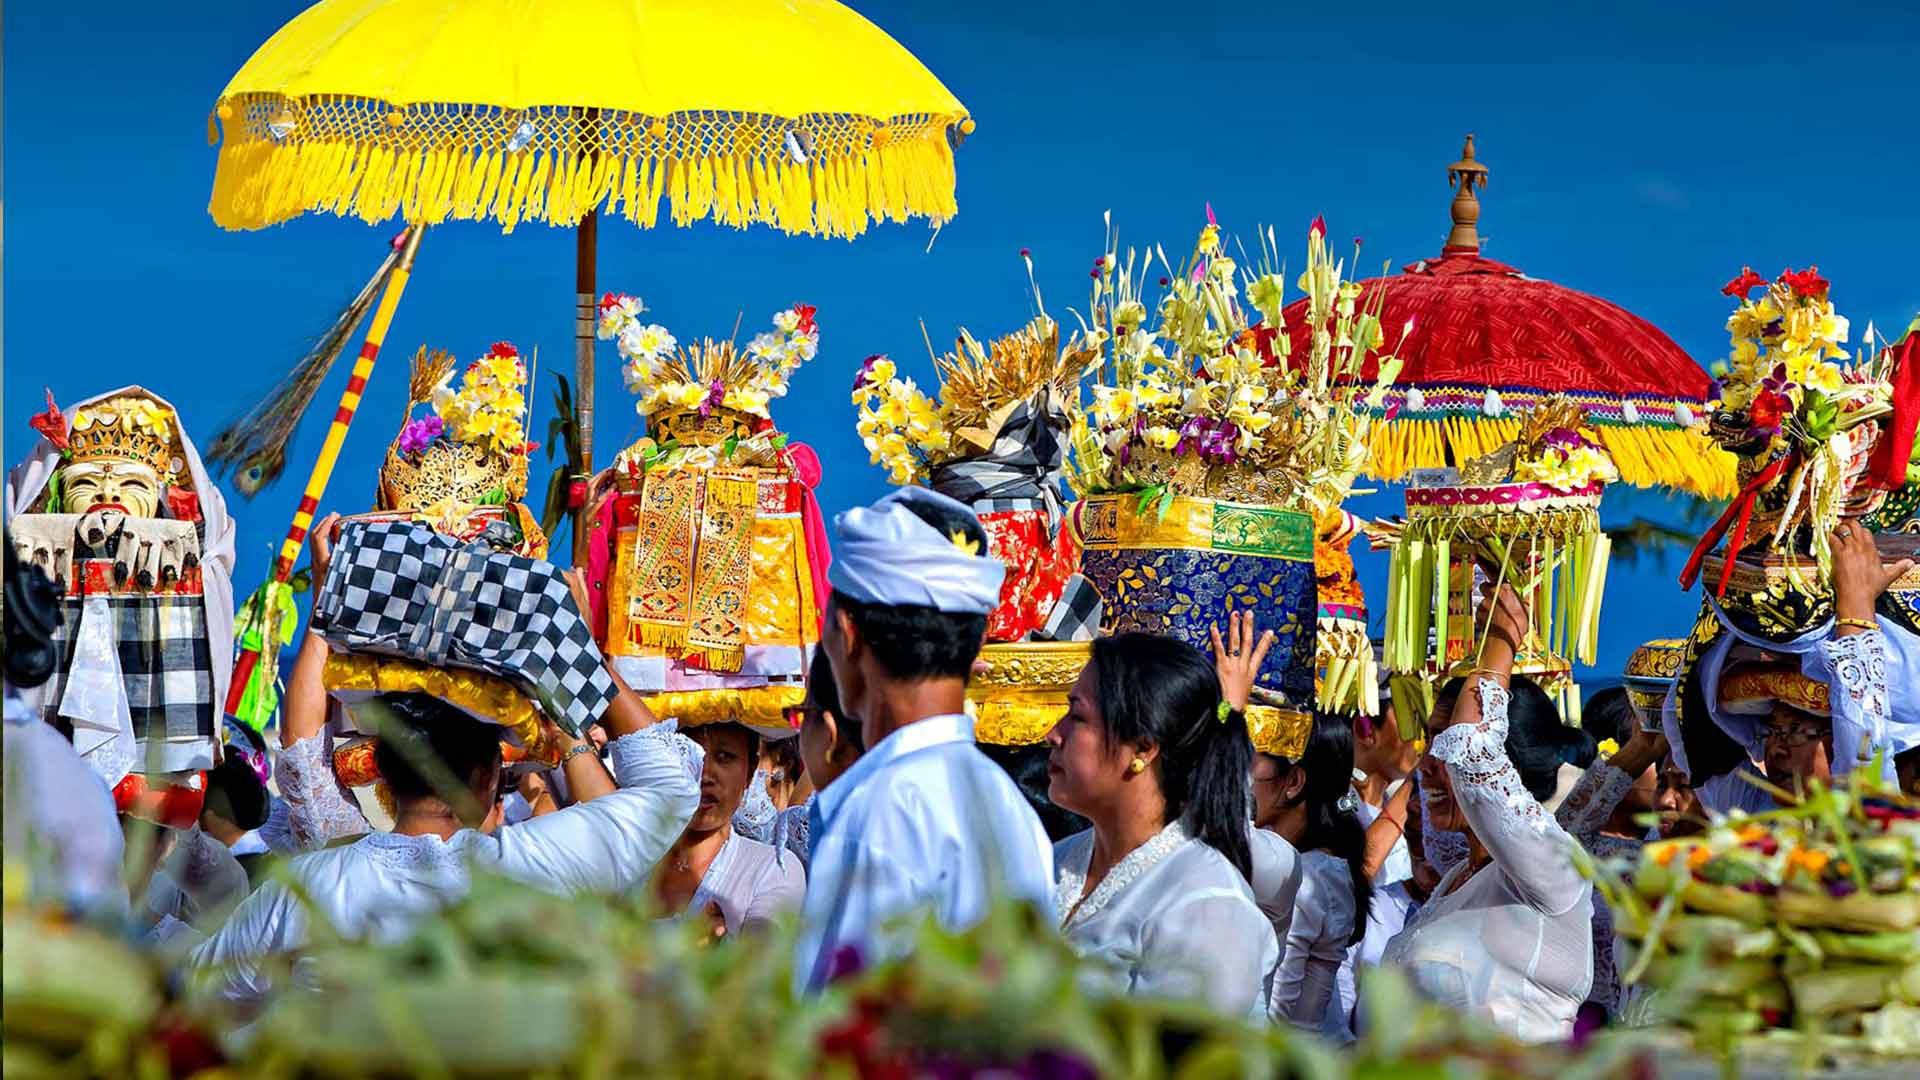 Ceremony-The Heart And Soul of Balinese Culture